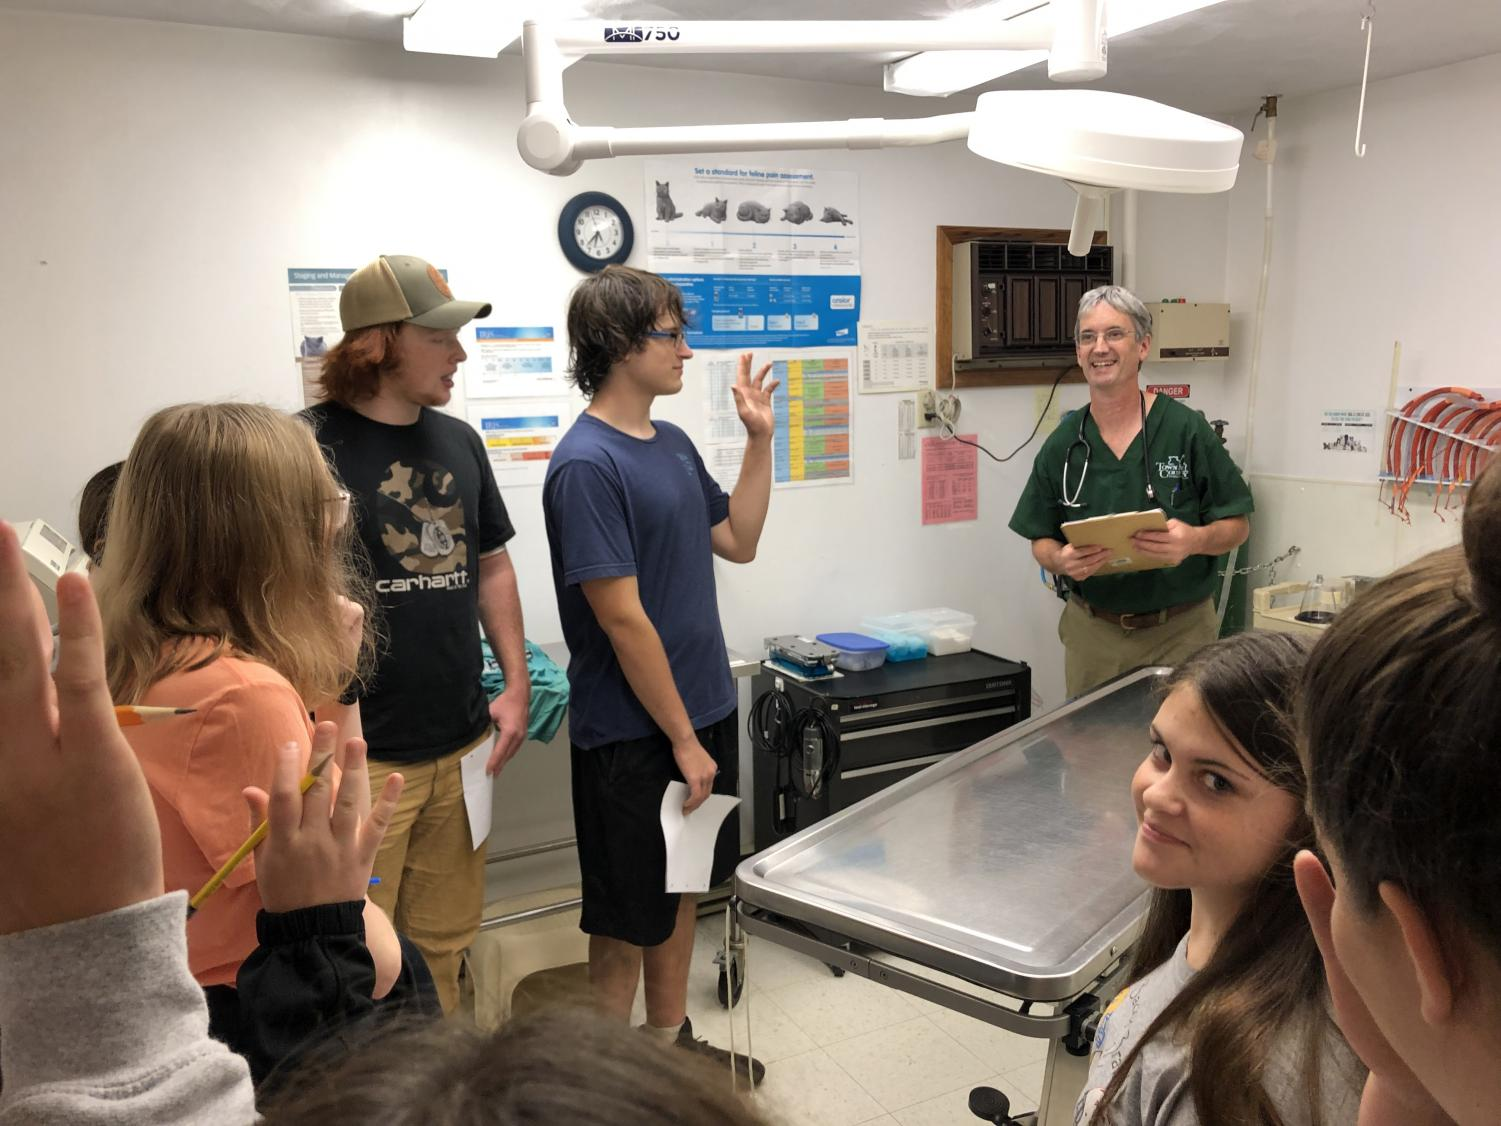 FFA member Brody Rizzo raises his hand to answer questions from Dr. Aquadro (right) during the tour of the exam room at Town and Country Animal Hospital in Warriors Mark